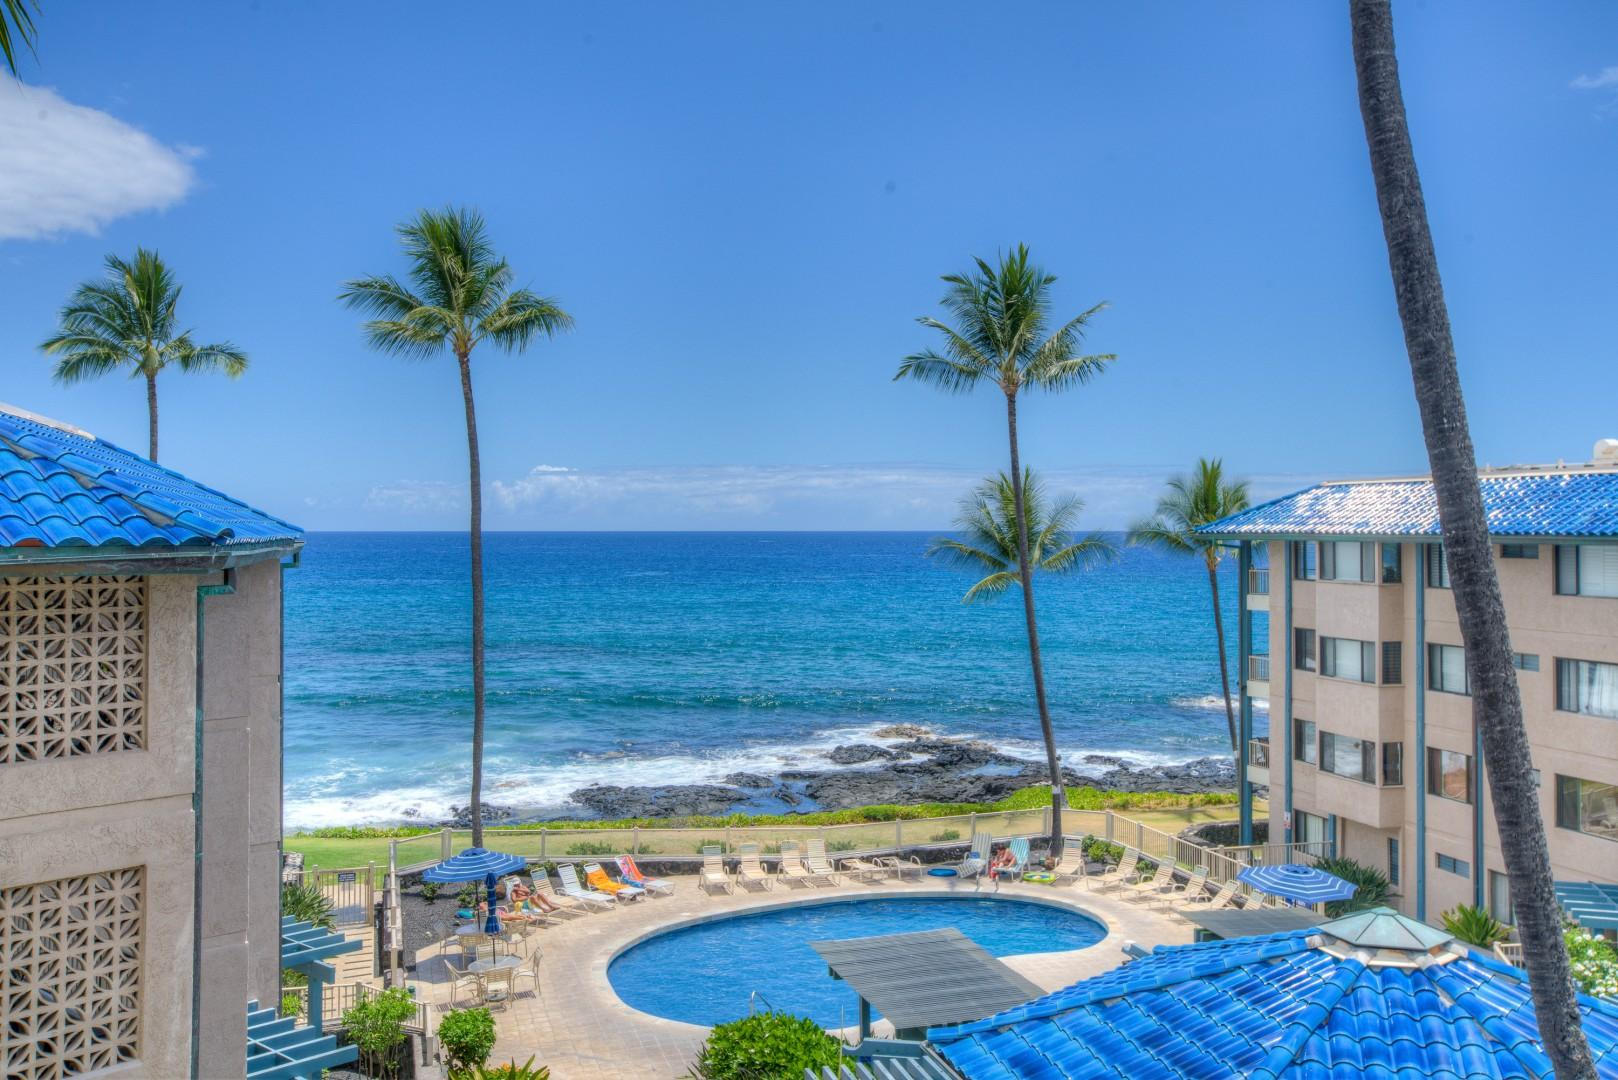 Actual View from Lanai of Unit F-11 over the Pool Area to the Ocean beyond.